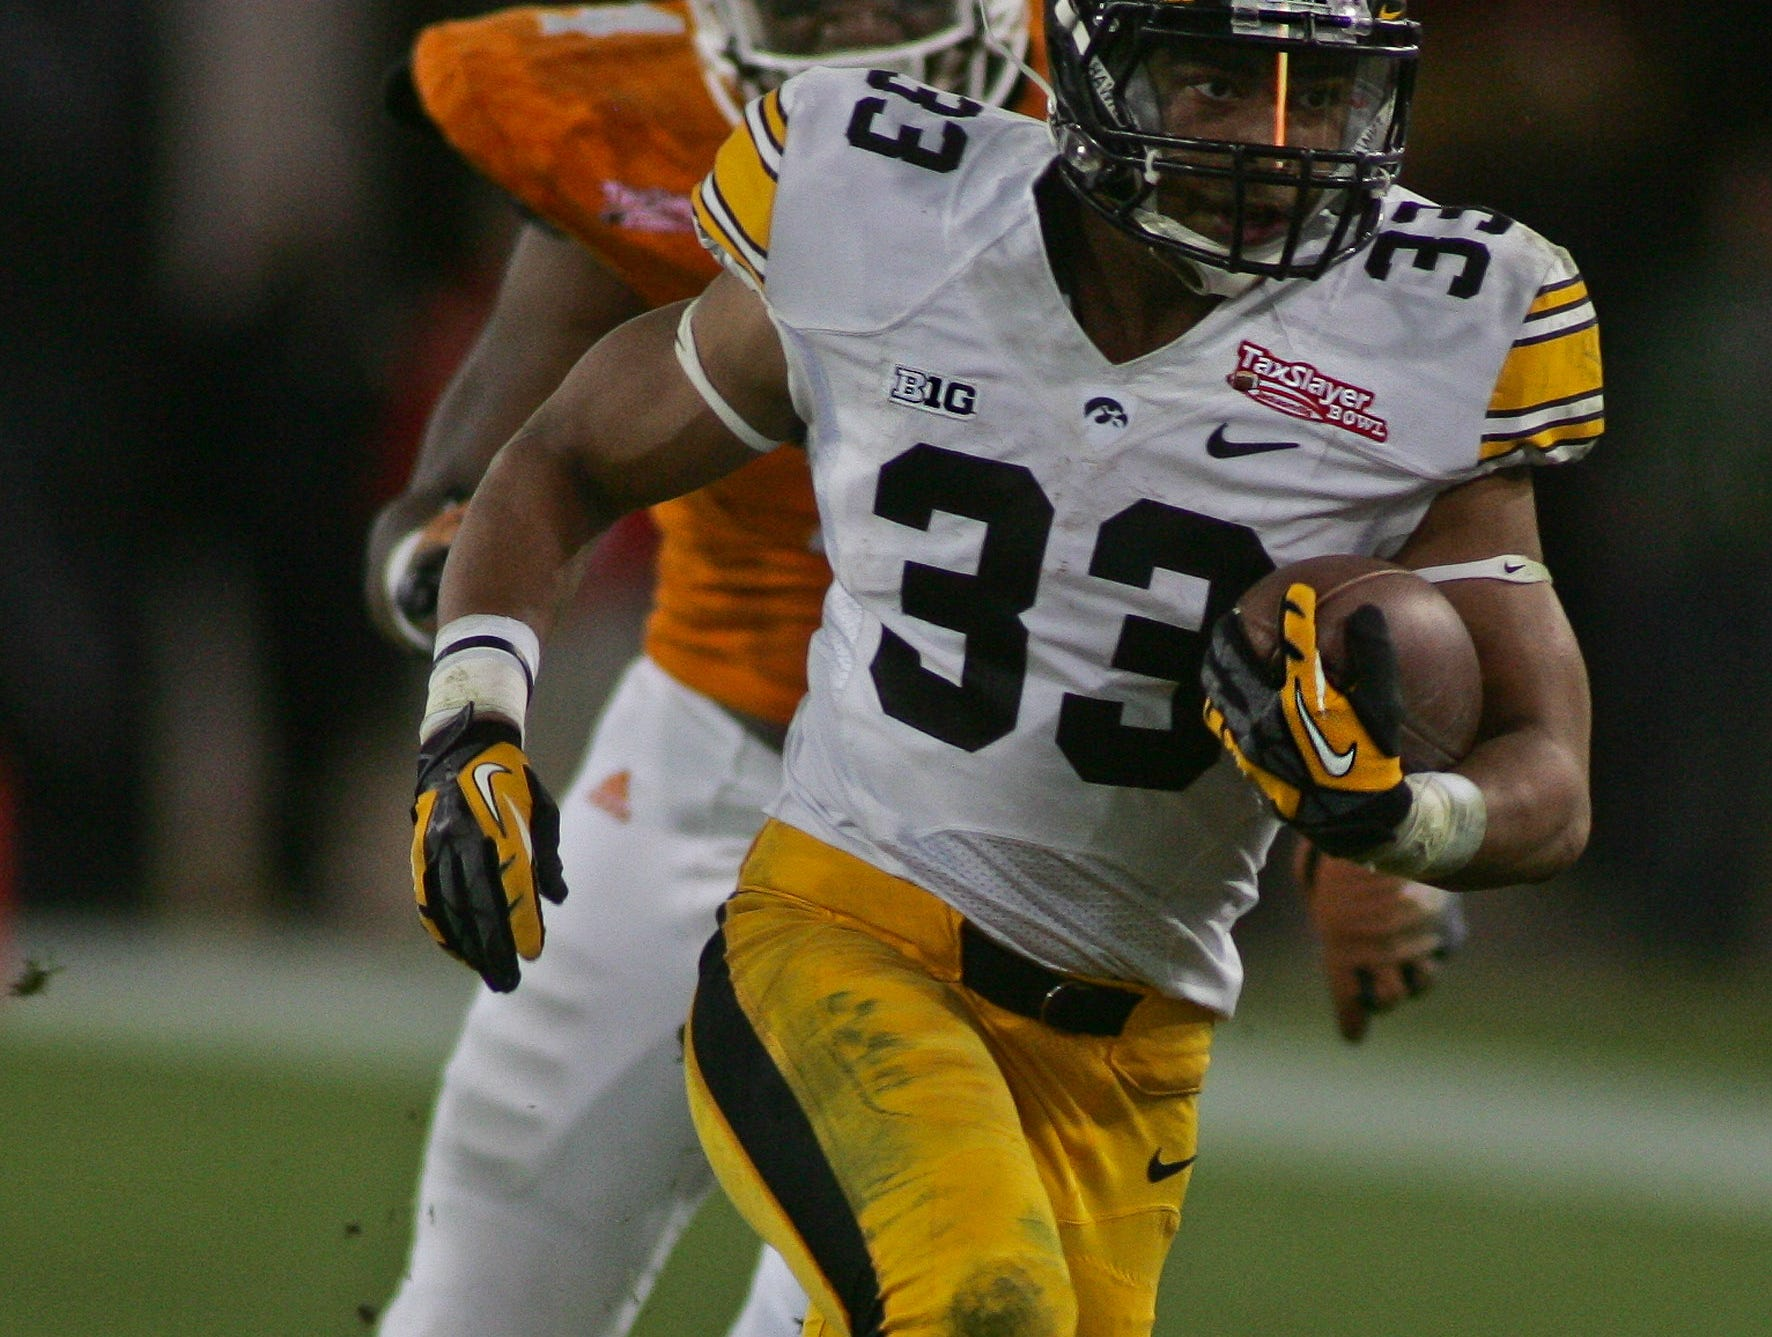 Jan 2, 2015; Jacksonville, FL, USA; Iowa Hawkeyes running back Jordan Canzeri (33) runs for a first down in the third quarter of the 2015 TaxSlayer Bowl against the Tennessee Volunteers at EverBank Field. The Tennessee Volunteers beat the Iowa Hawkeyes 45-28. Mandatory Credit: Phil Sears-USA TODAY Sports